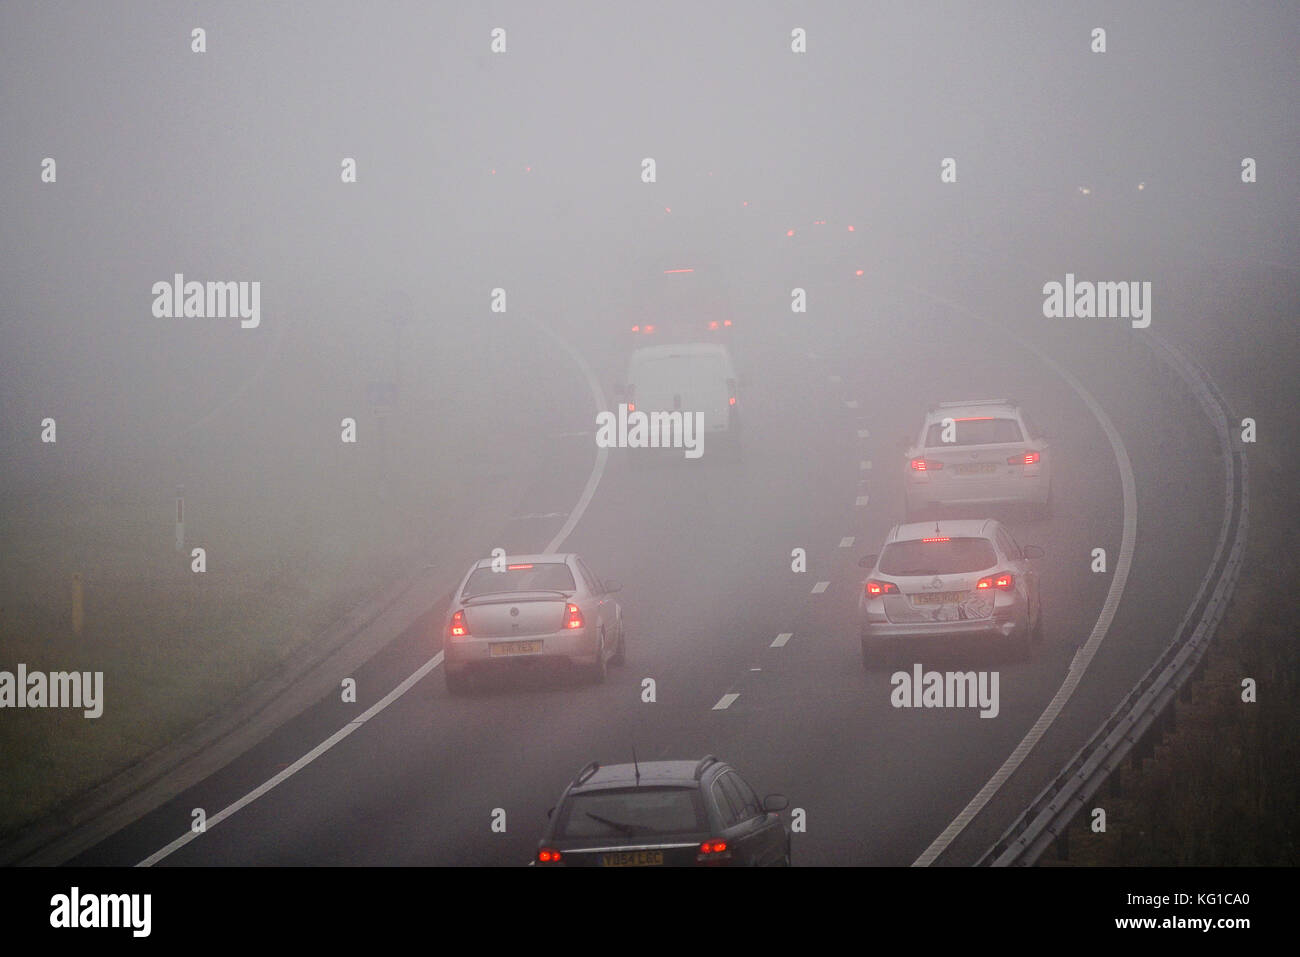 Lower Mousehill Lane, Milford. 2nd Nov, 2017. UK Weather. High pressure anticyclonic conditions caused overnight - Stock Image